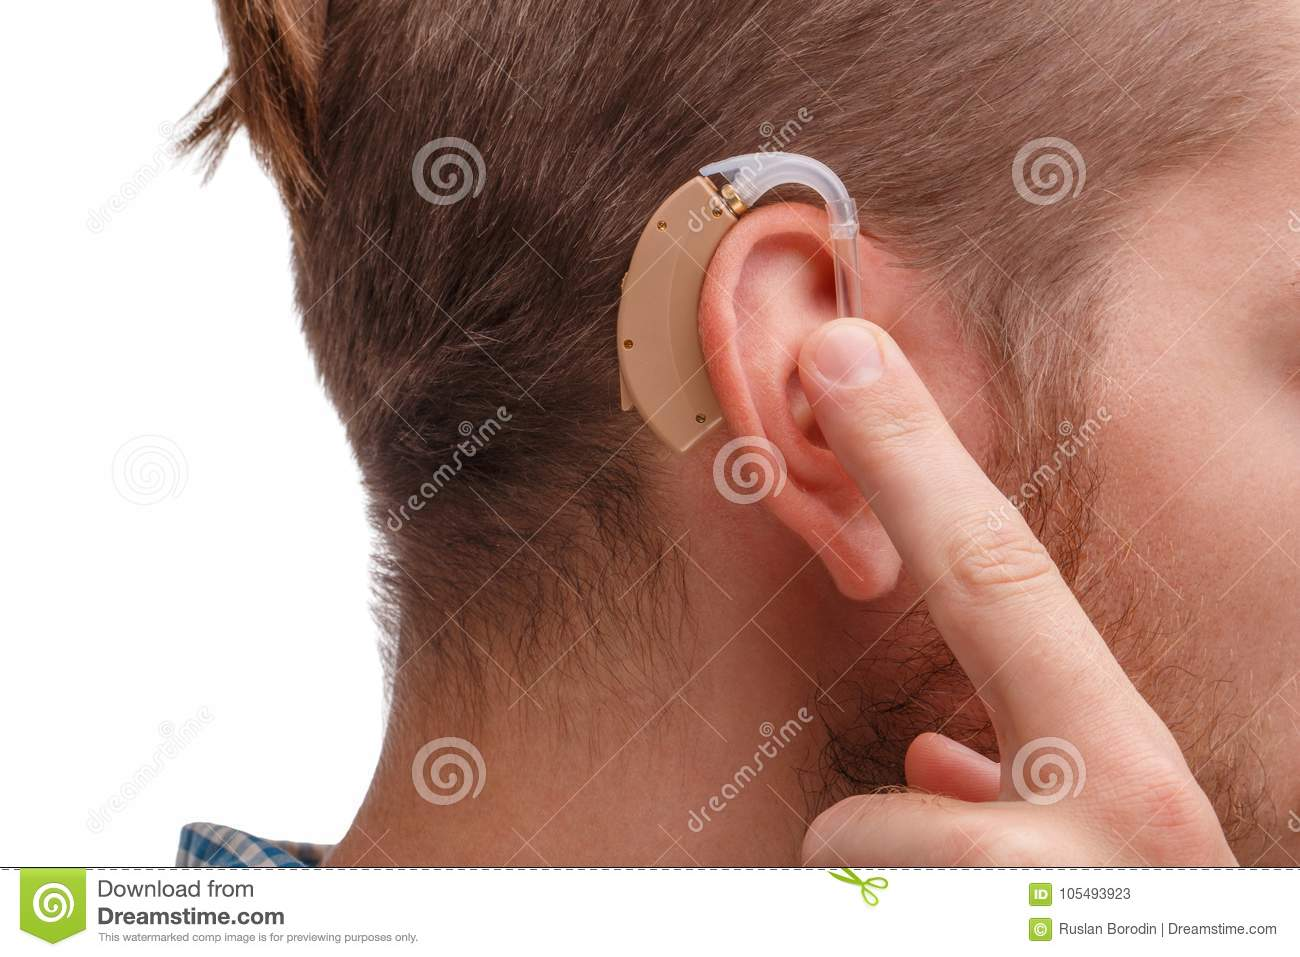 Guy Holds The Finger Of The Hearing Aid On His Ear  Isolated